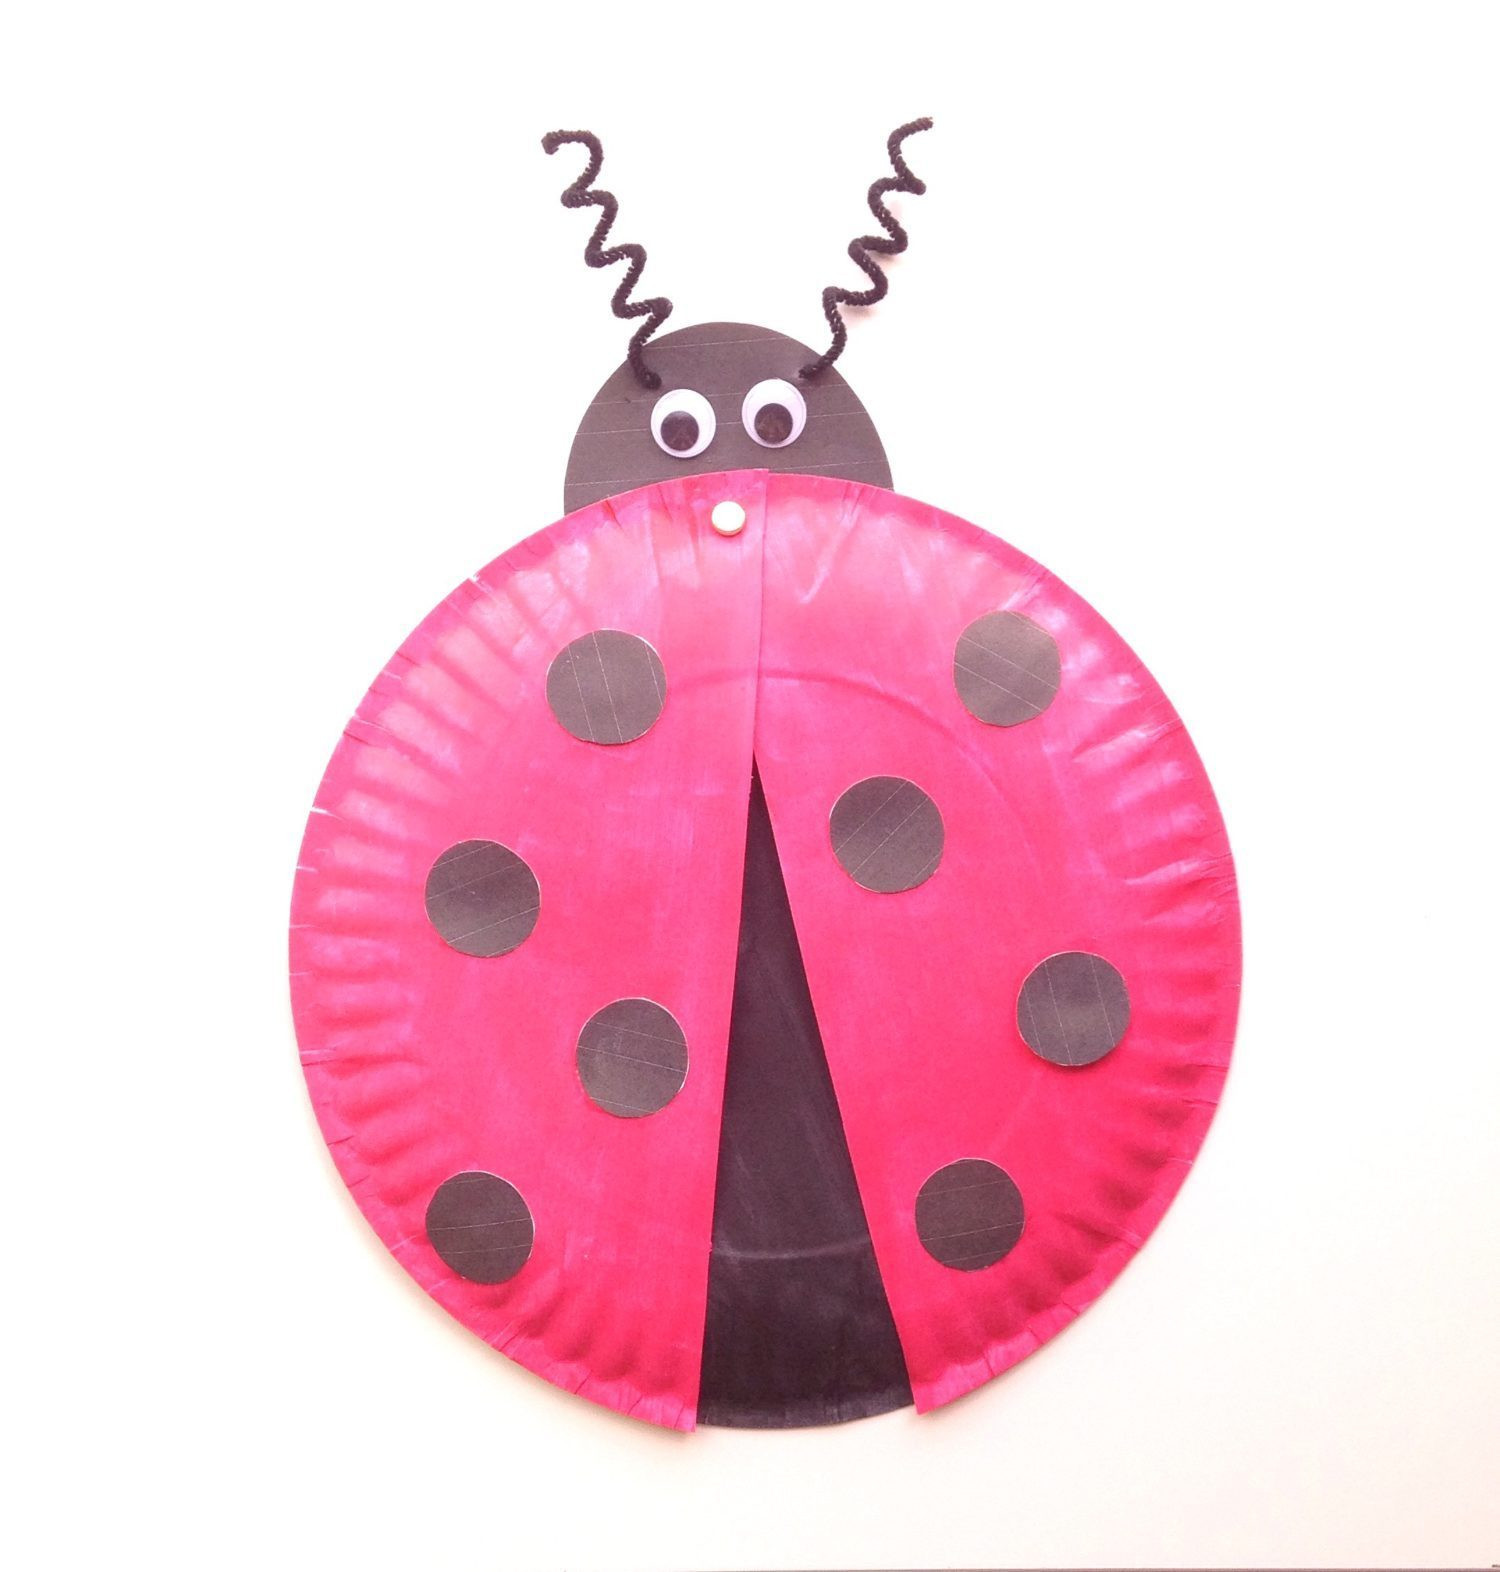 Best ideas about Free Kids Crafts . Save or Pin Ladybug Paper Plate Craft for Kids Free Printable Now.